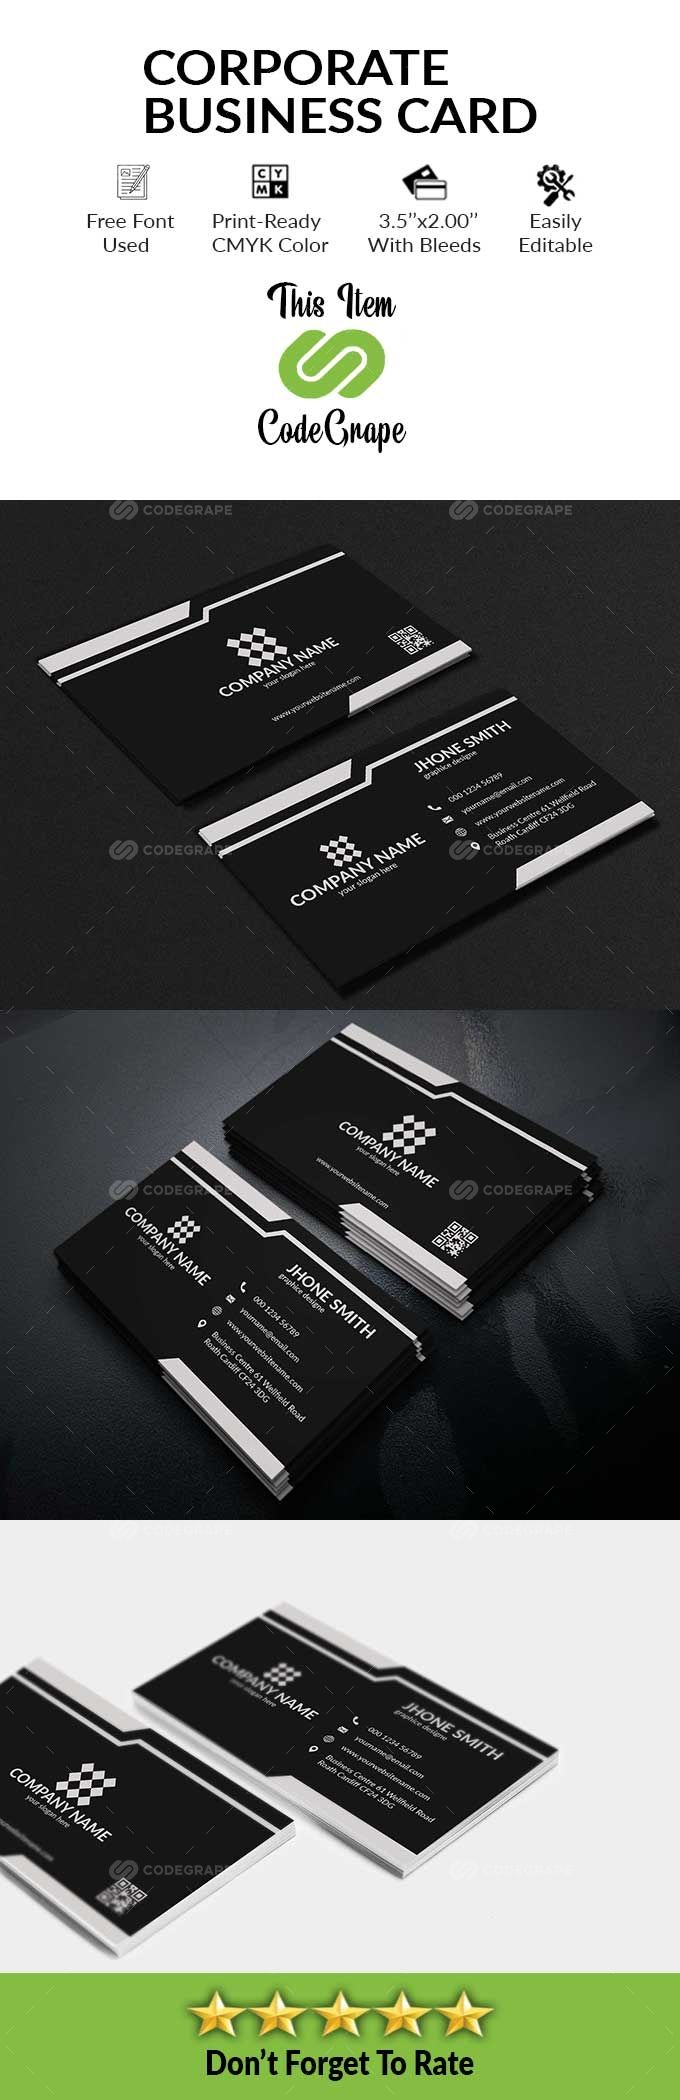 Corporate Business Card In 2021 Corporate Business Card Corporate Business Business Card Design